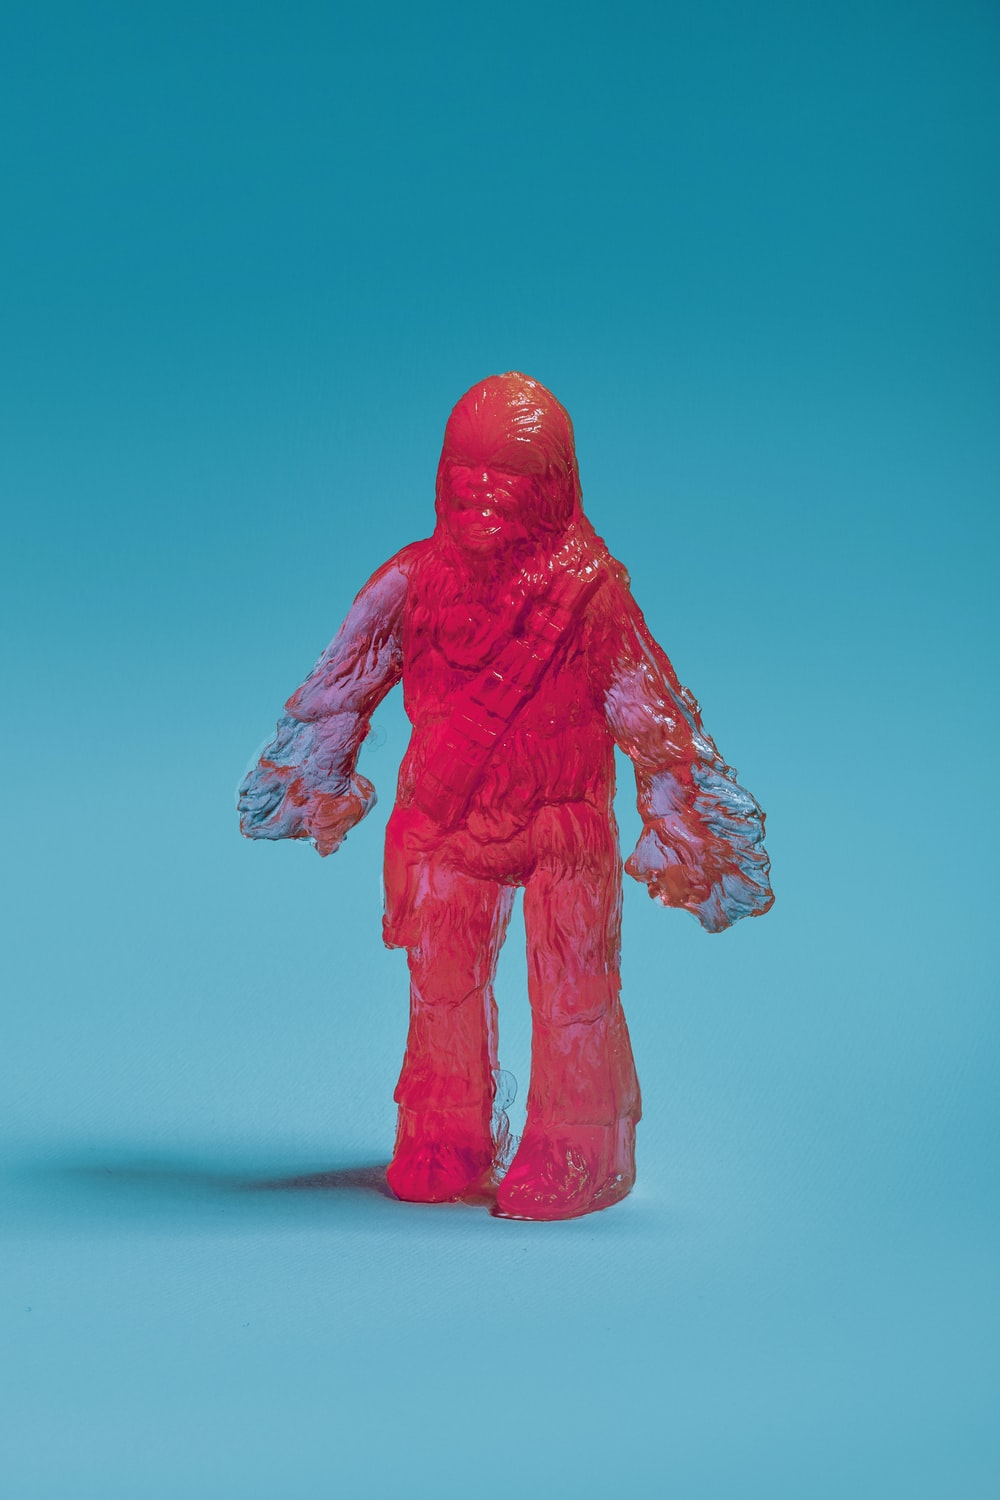 red human statue on blue background